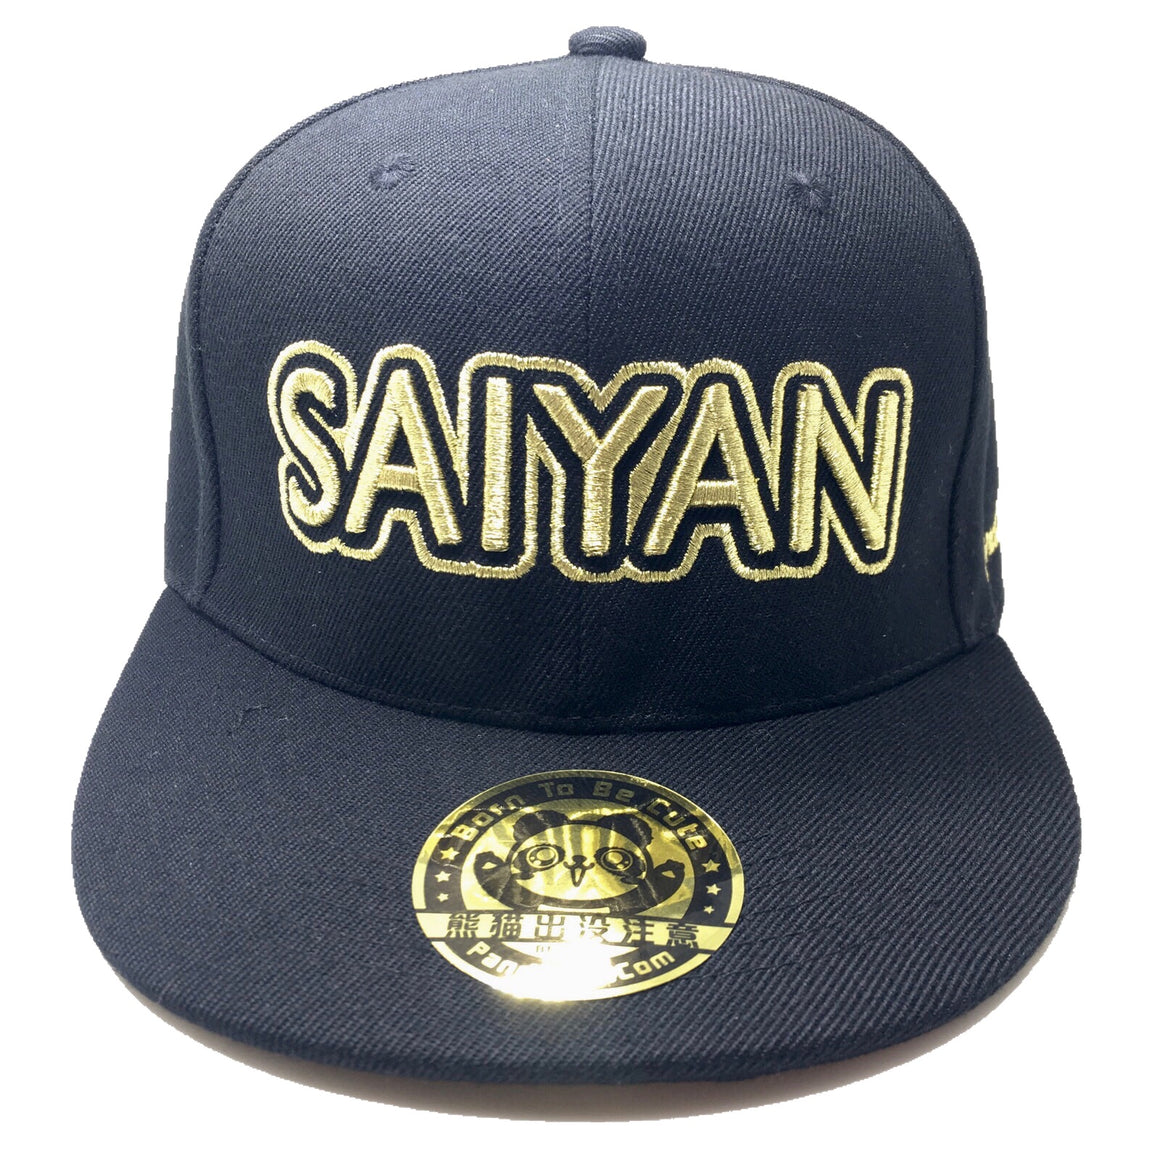 SAIYAN 3D PUFF EMBROIDERY HAT